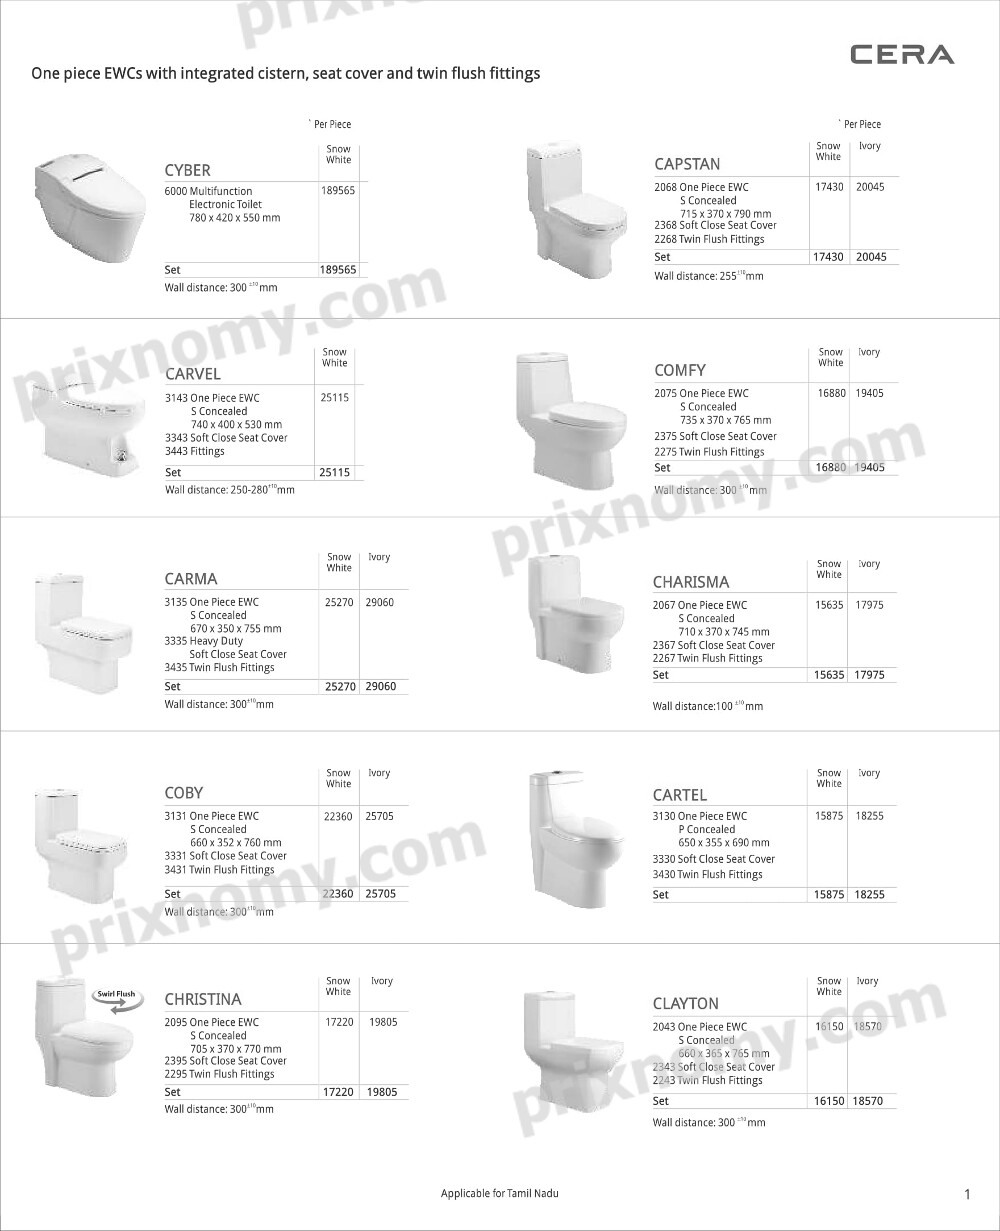 cera sanitaryware price list Outstanding Cera Faucets Price List 2016 Pdf Picture Collection  cera sanitaryware price list